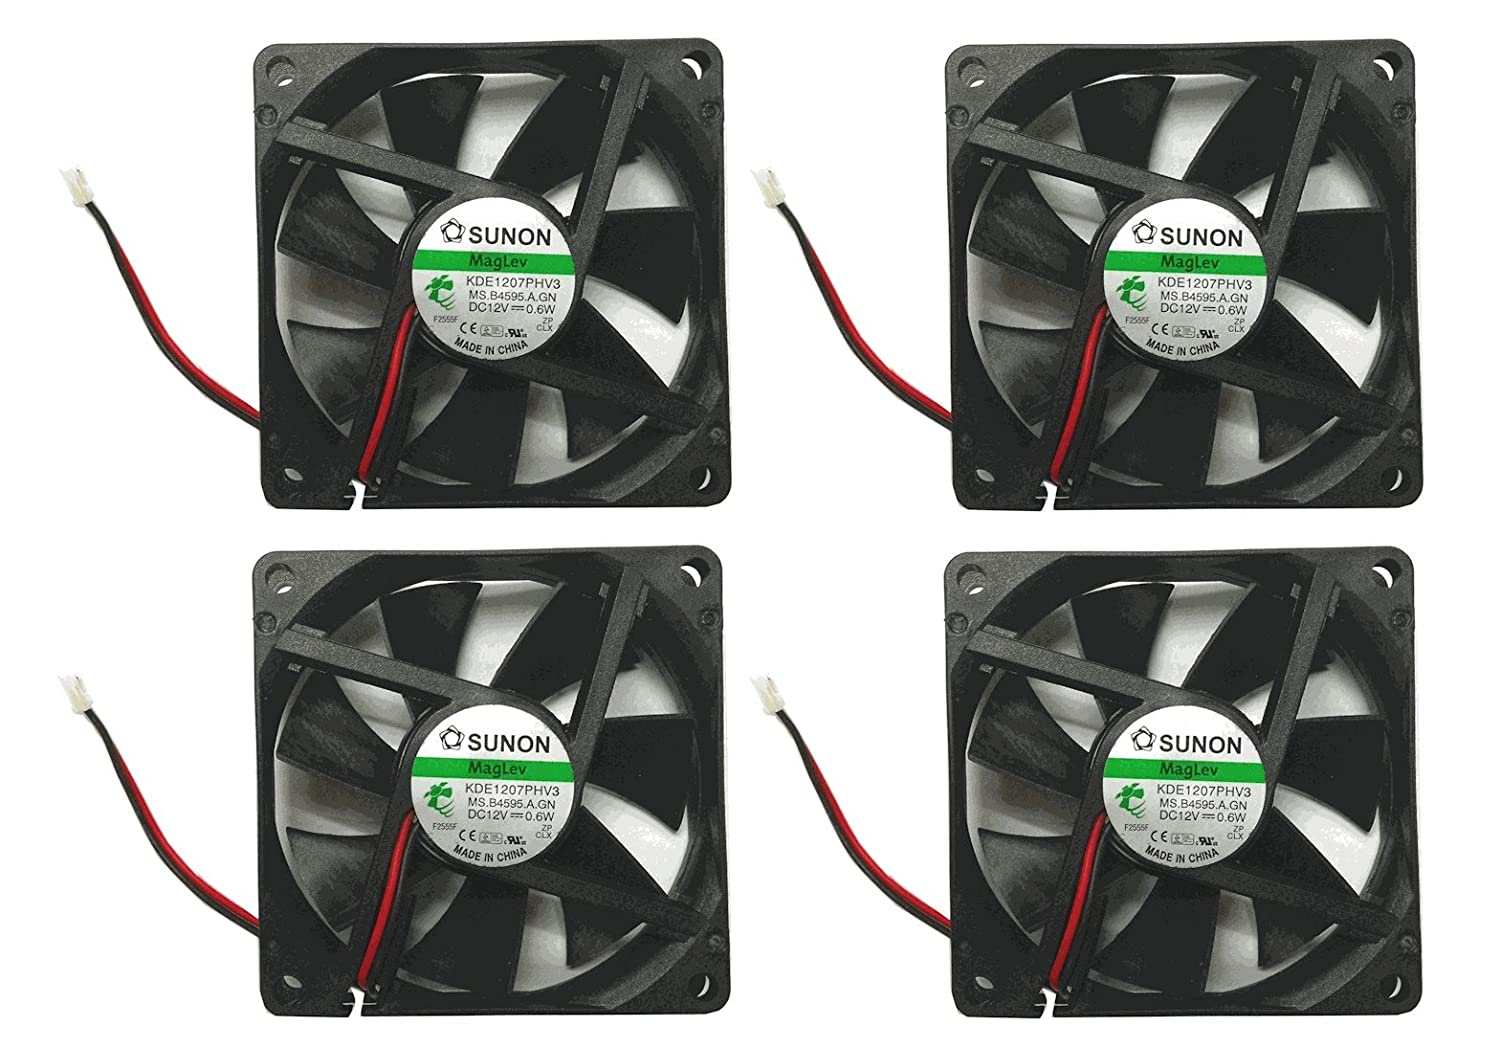 Sunon 70x70x15mm KDE1207PHV3 2Pin/2Wire 12v Low Speed Fan (4 pack)